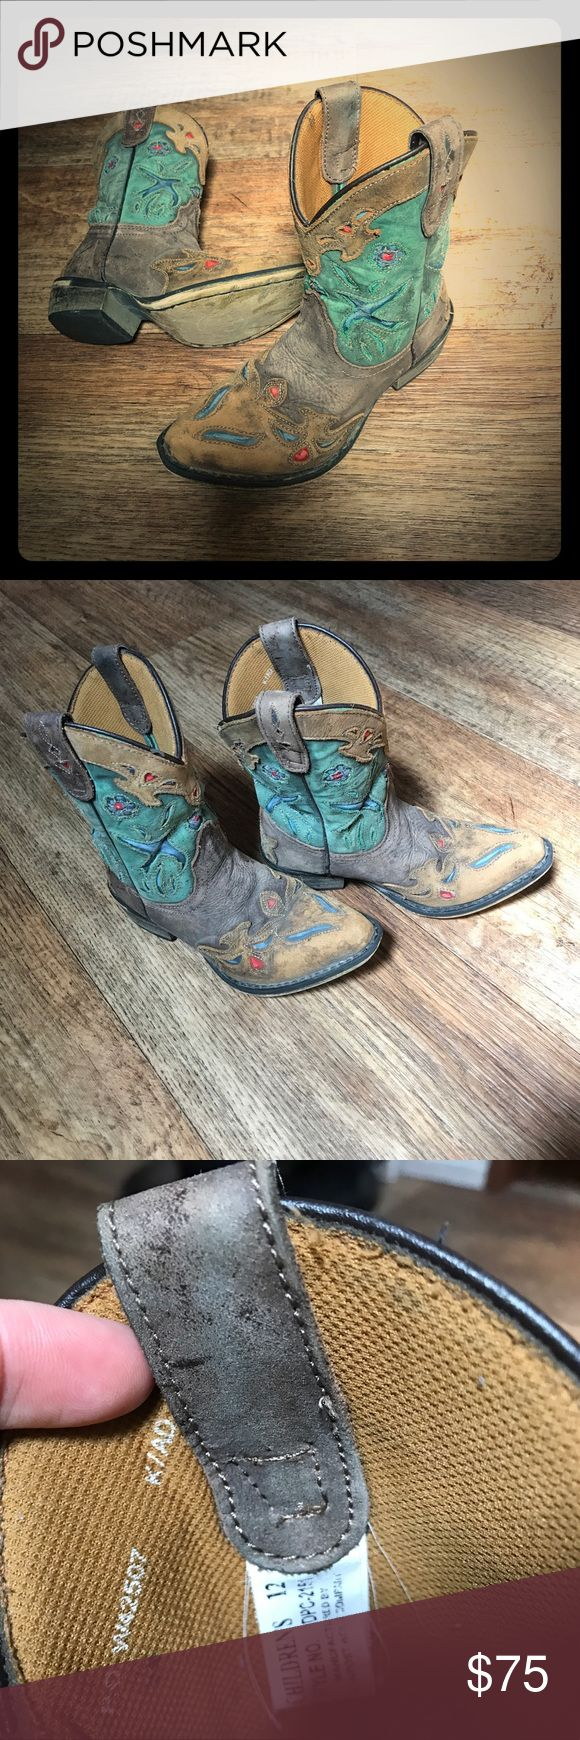 Dan post cow girl boots. Size 12 so cute 🐮 Danpost boot company size 12. Extremely good condition. Your little cow girl will love these. Pair them with her boot cut jeans or her daisy dukes. Perfect for her Rodeo. Dan Post Shoes Boots